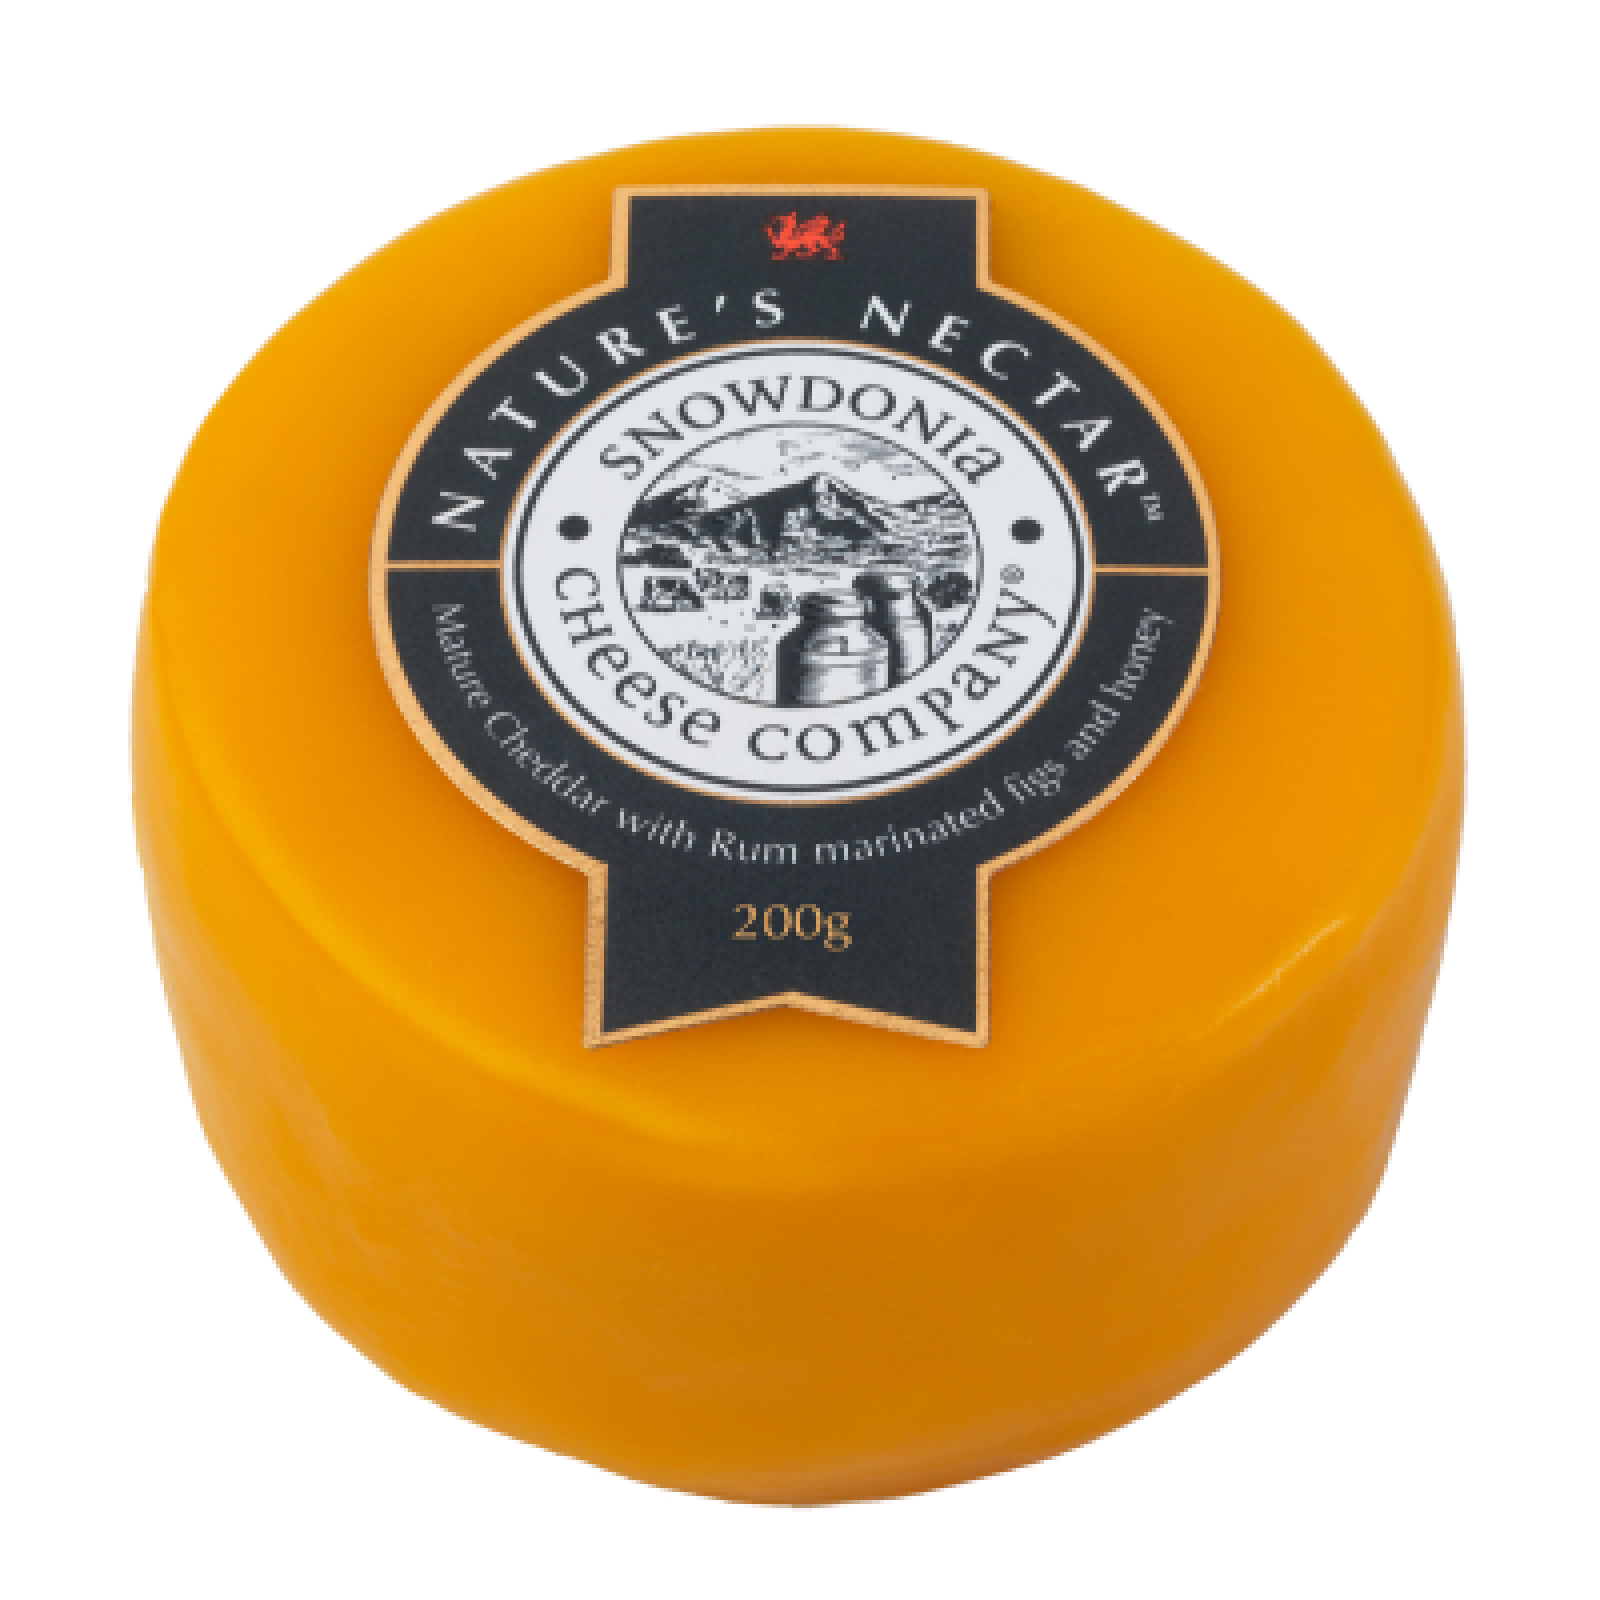 Nature's Nectar 200g - Cheddar with Rum Marinated Figs & Honey Snowdonia Cheese Co